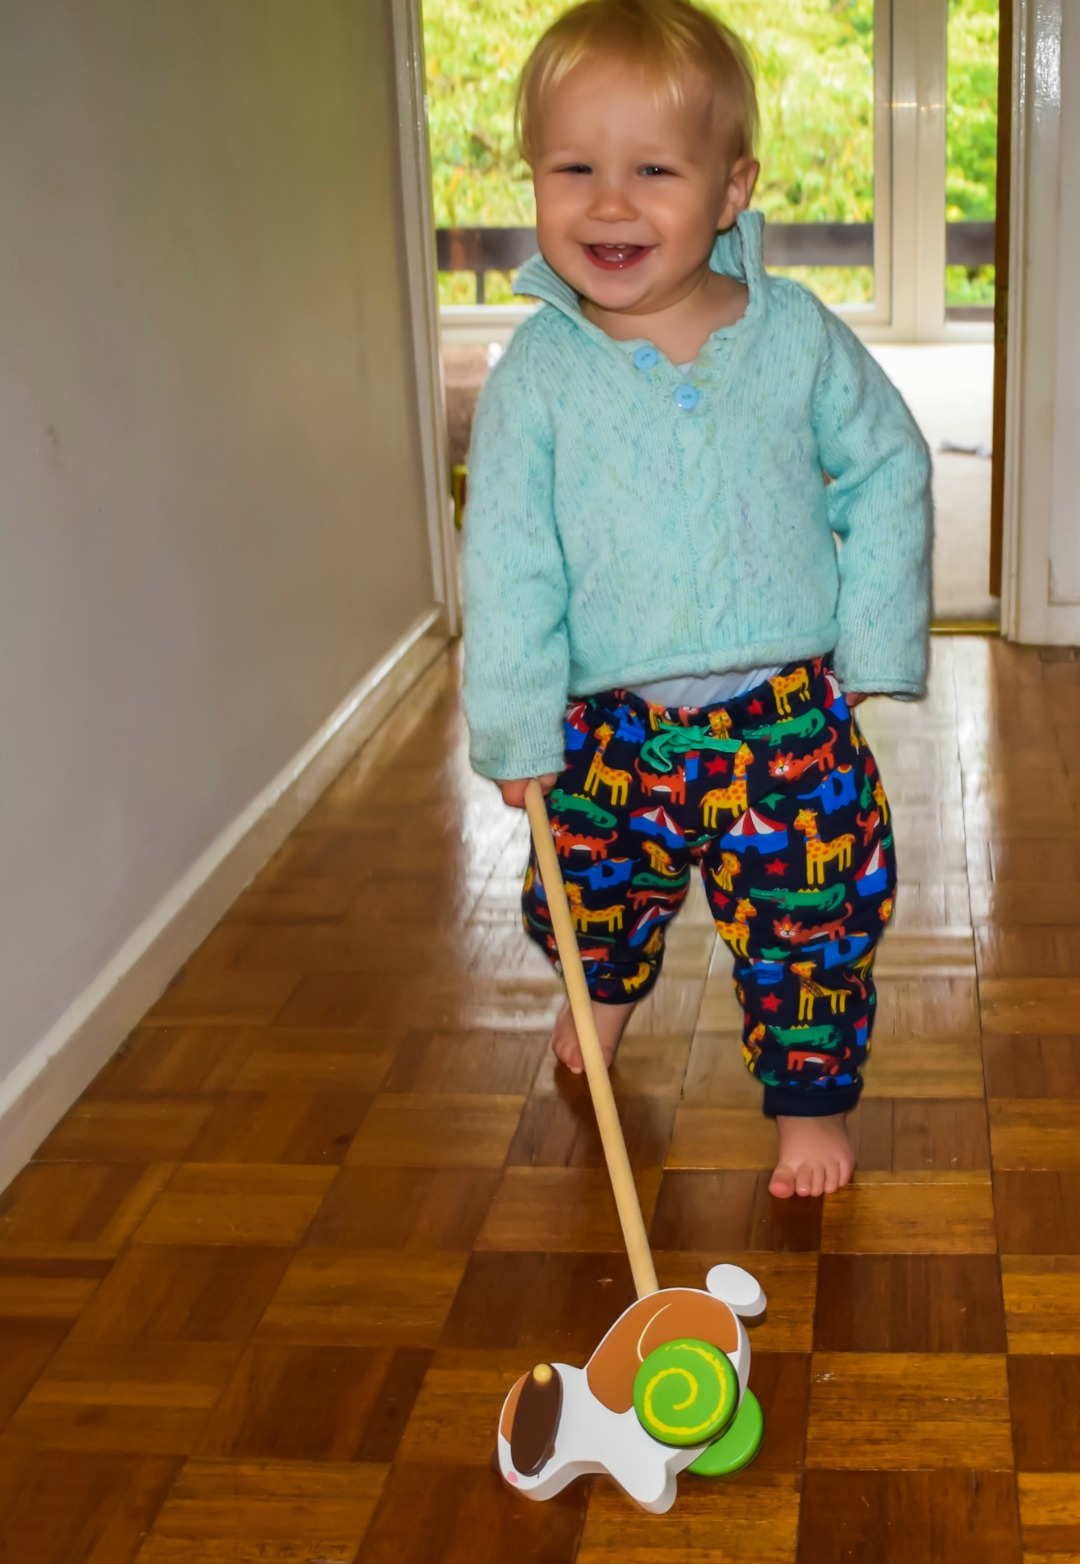 A 14 month old baby boy walking independently and pushing a Wooden Rabbit Push Along Toy from Bigjigs - he has a huge smile on his face and looks very happy - Bigjigs Sweetland Express and Push Along Rabbit - A Bigjigs Play Patrol Review - Mrs H's favourite things